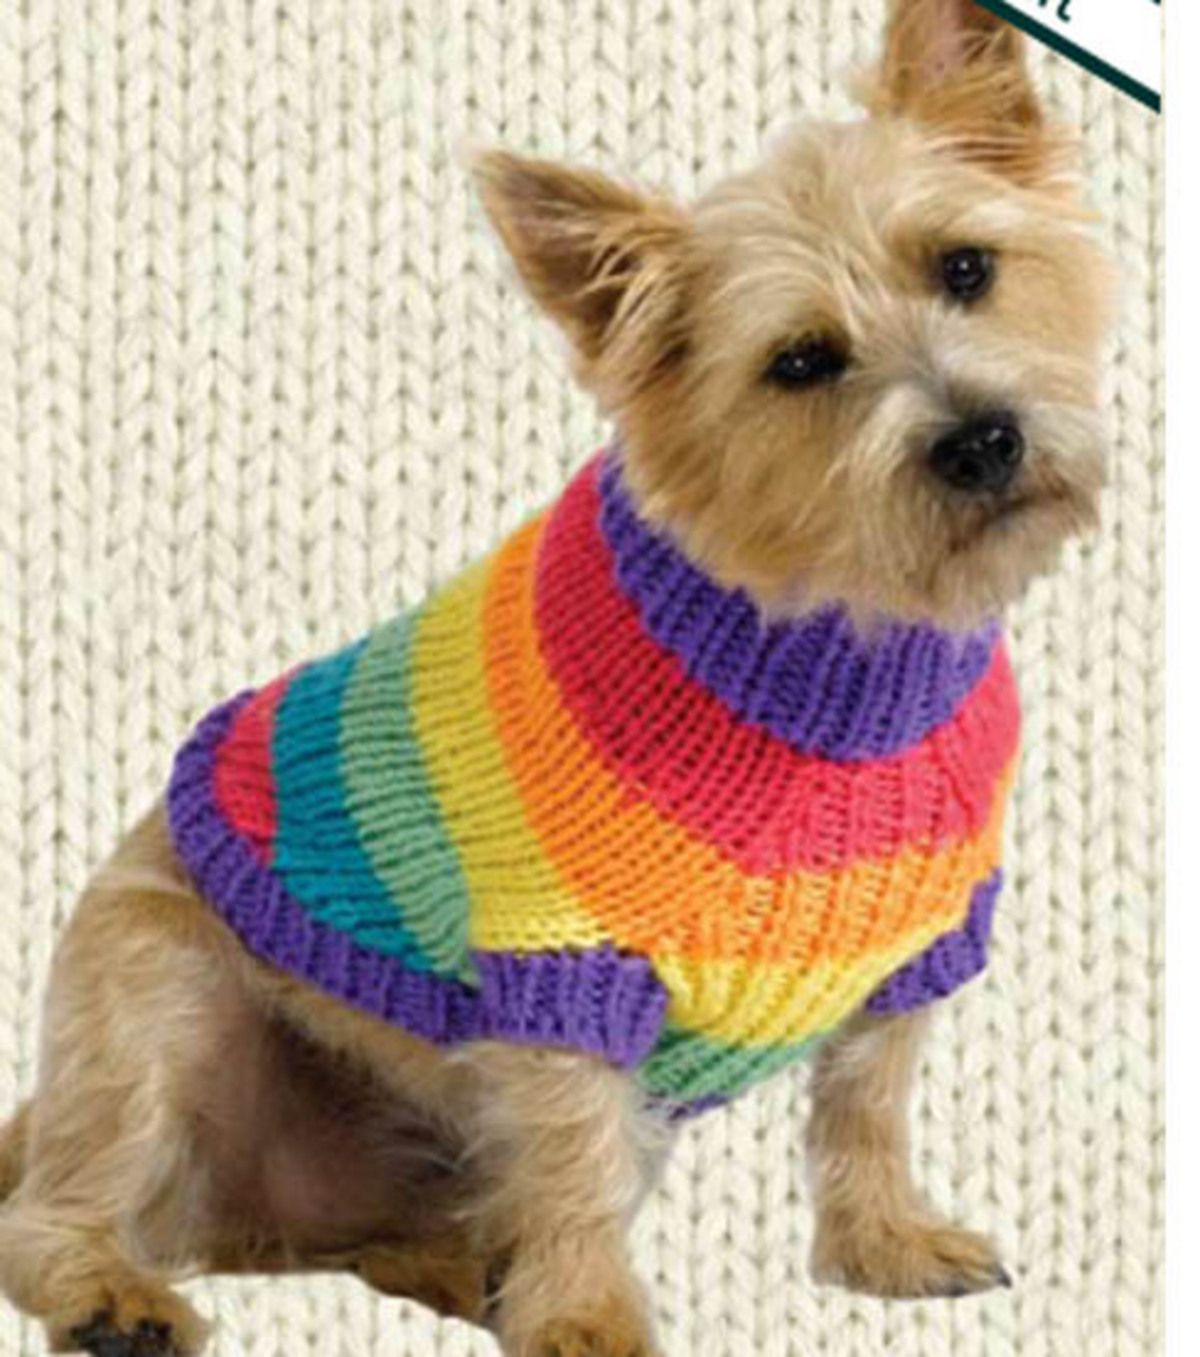 Pooch\'s Rainbow SweaterPooch\'s Rainbow Sweater | Pet Love | Pinterest